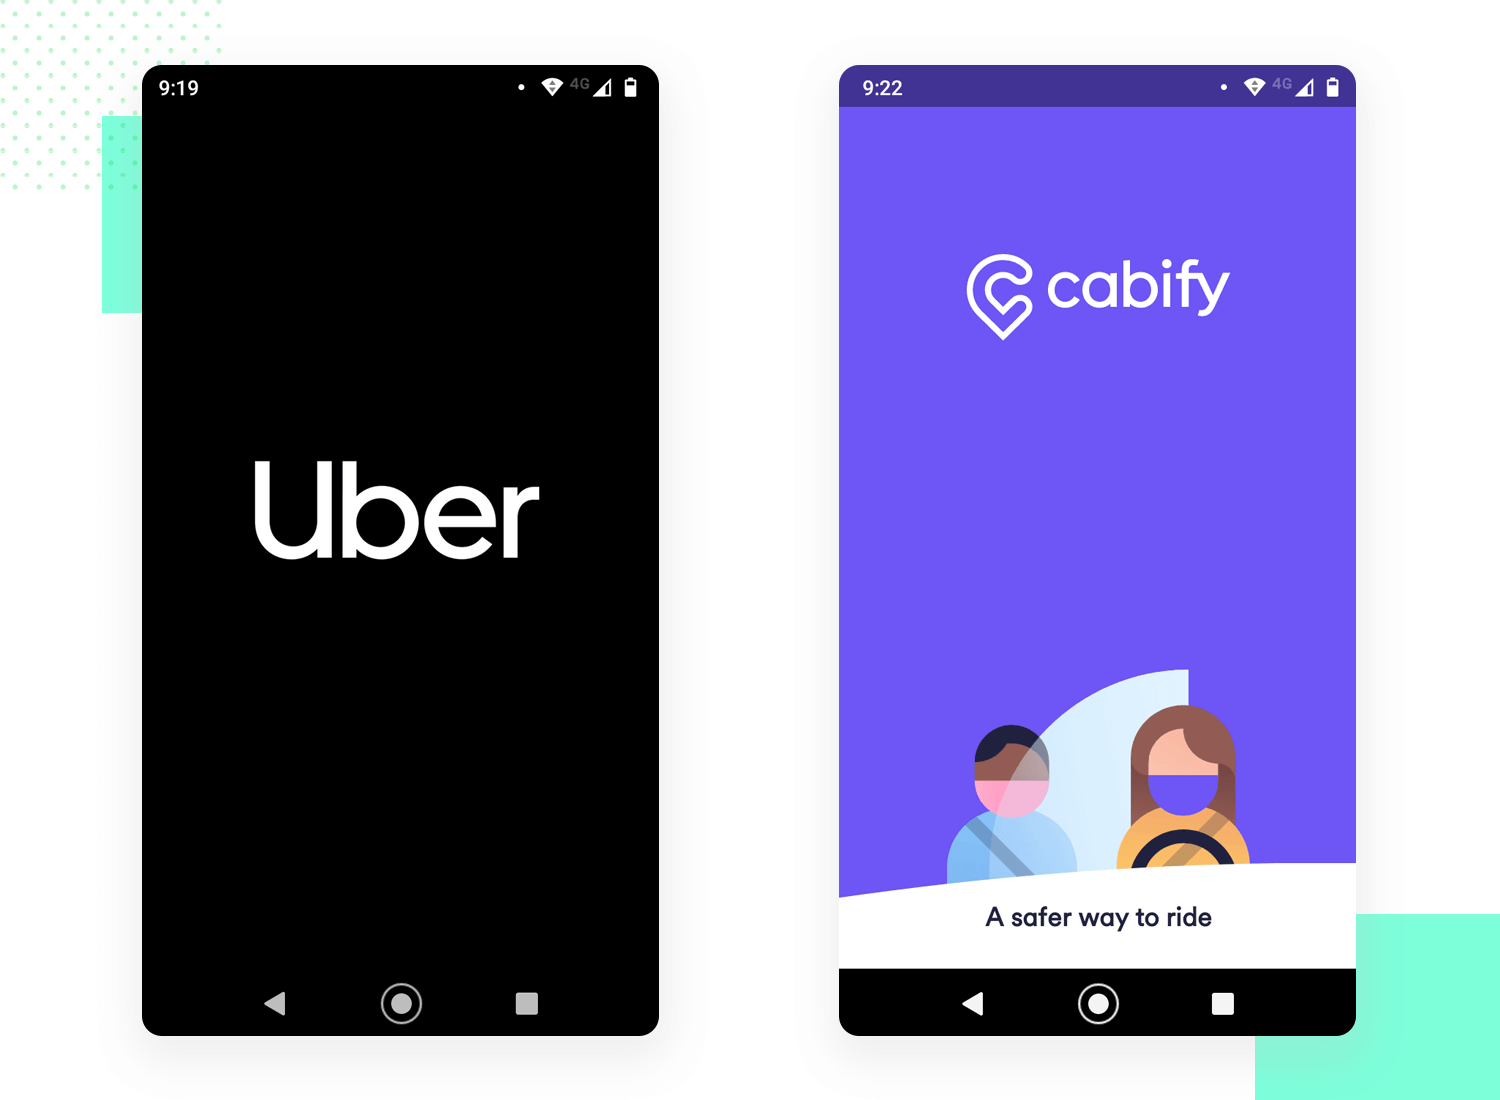 ride sharing splash screens design by uber and cabify